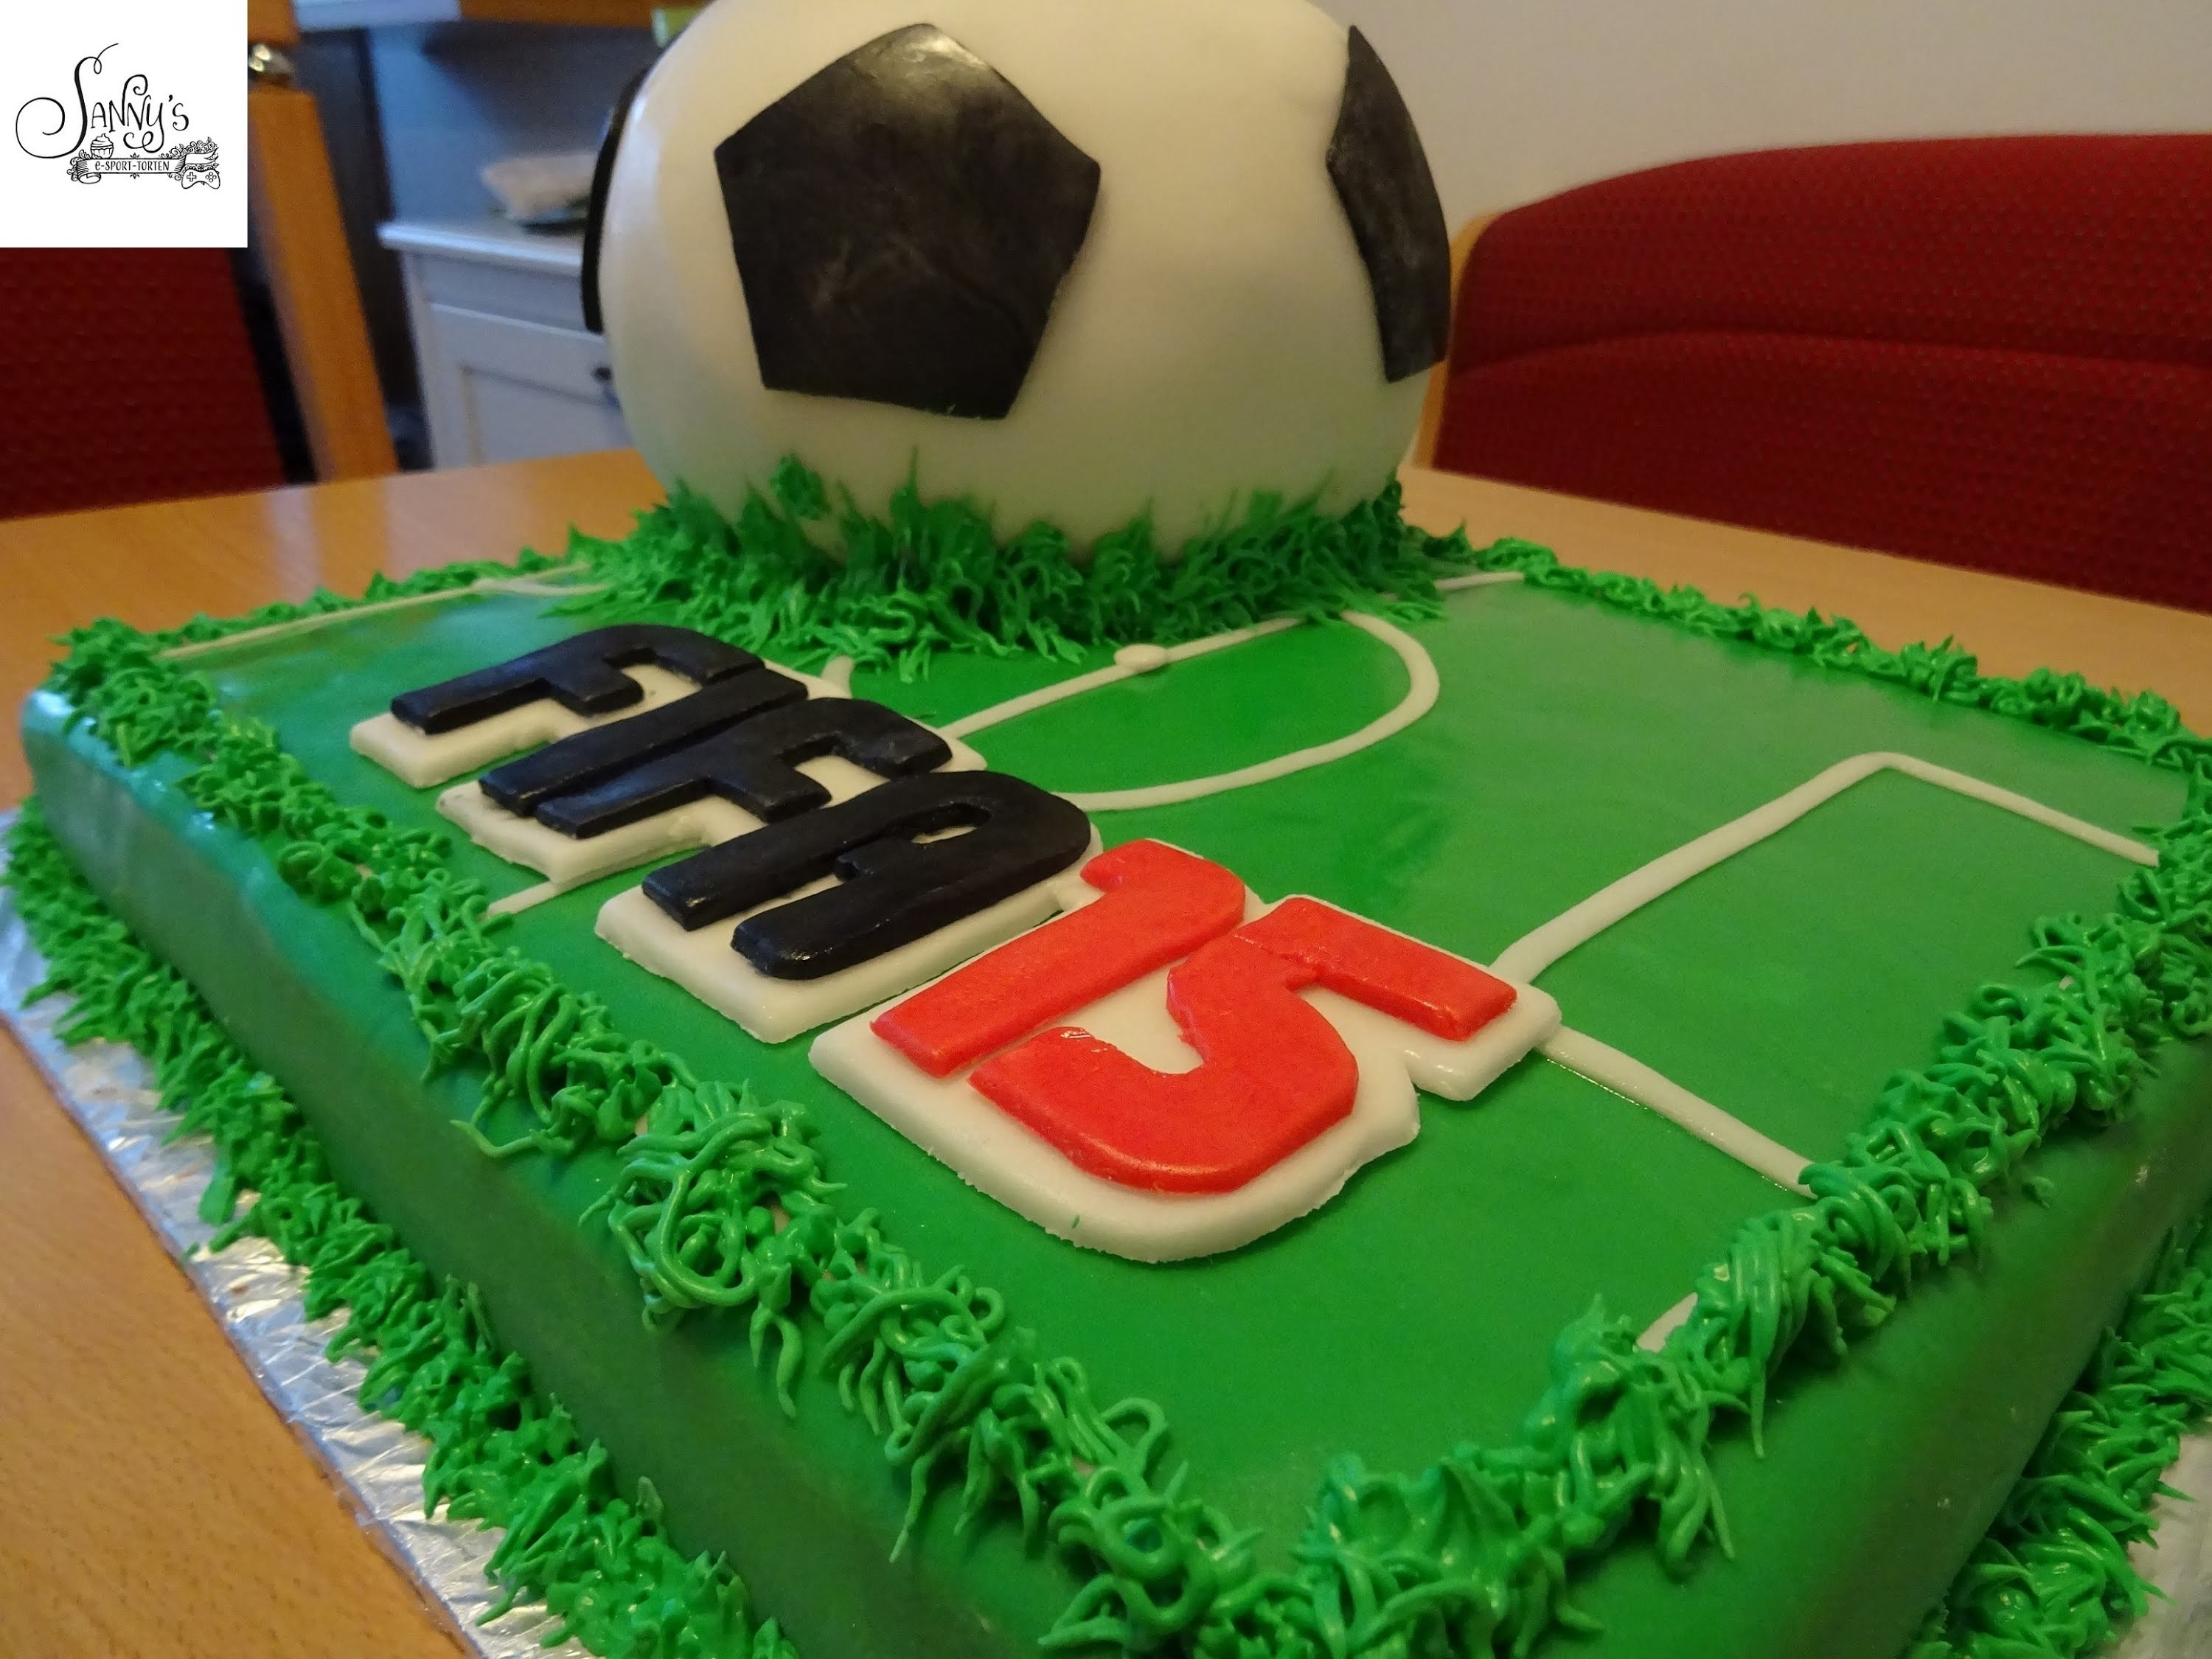 Fifa15 Torte.Fussball Torte.soccer cake.How to make by Sanny´s eSport Torten